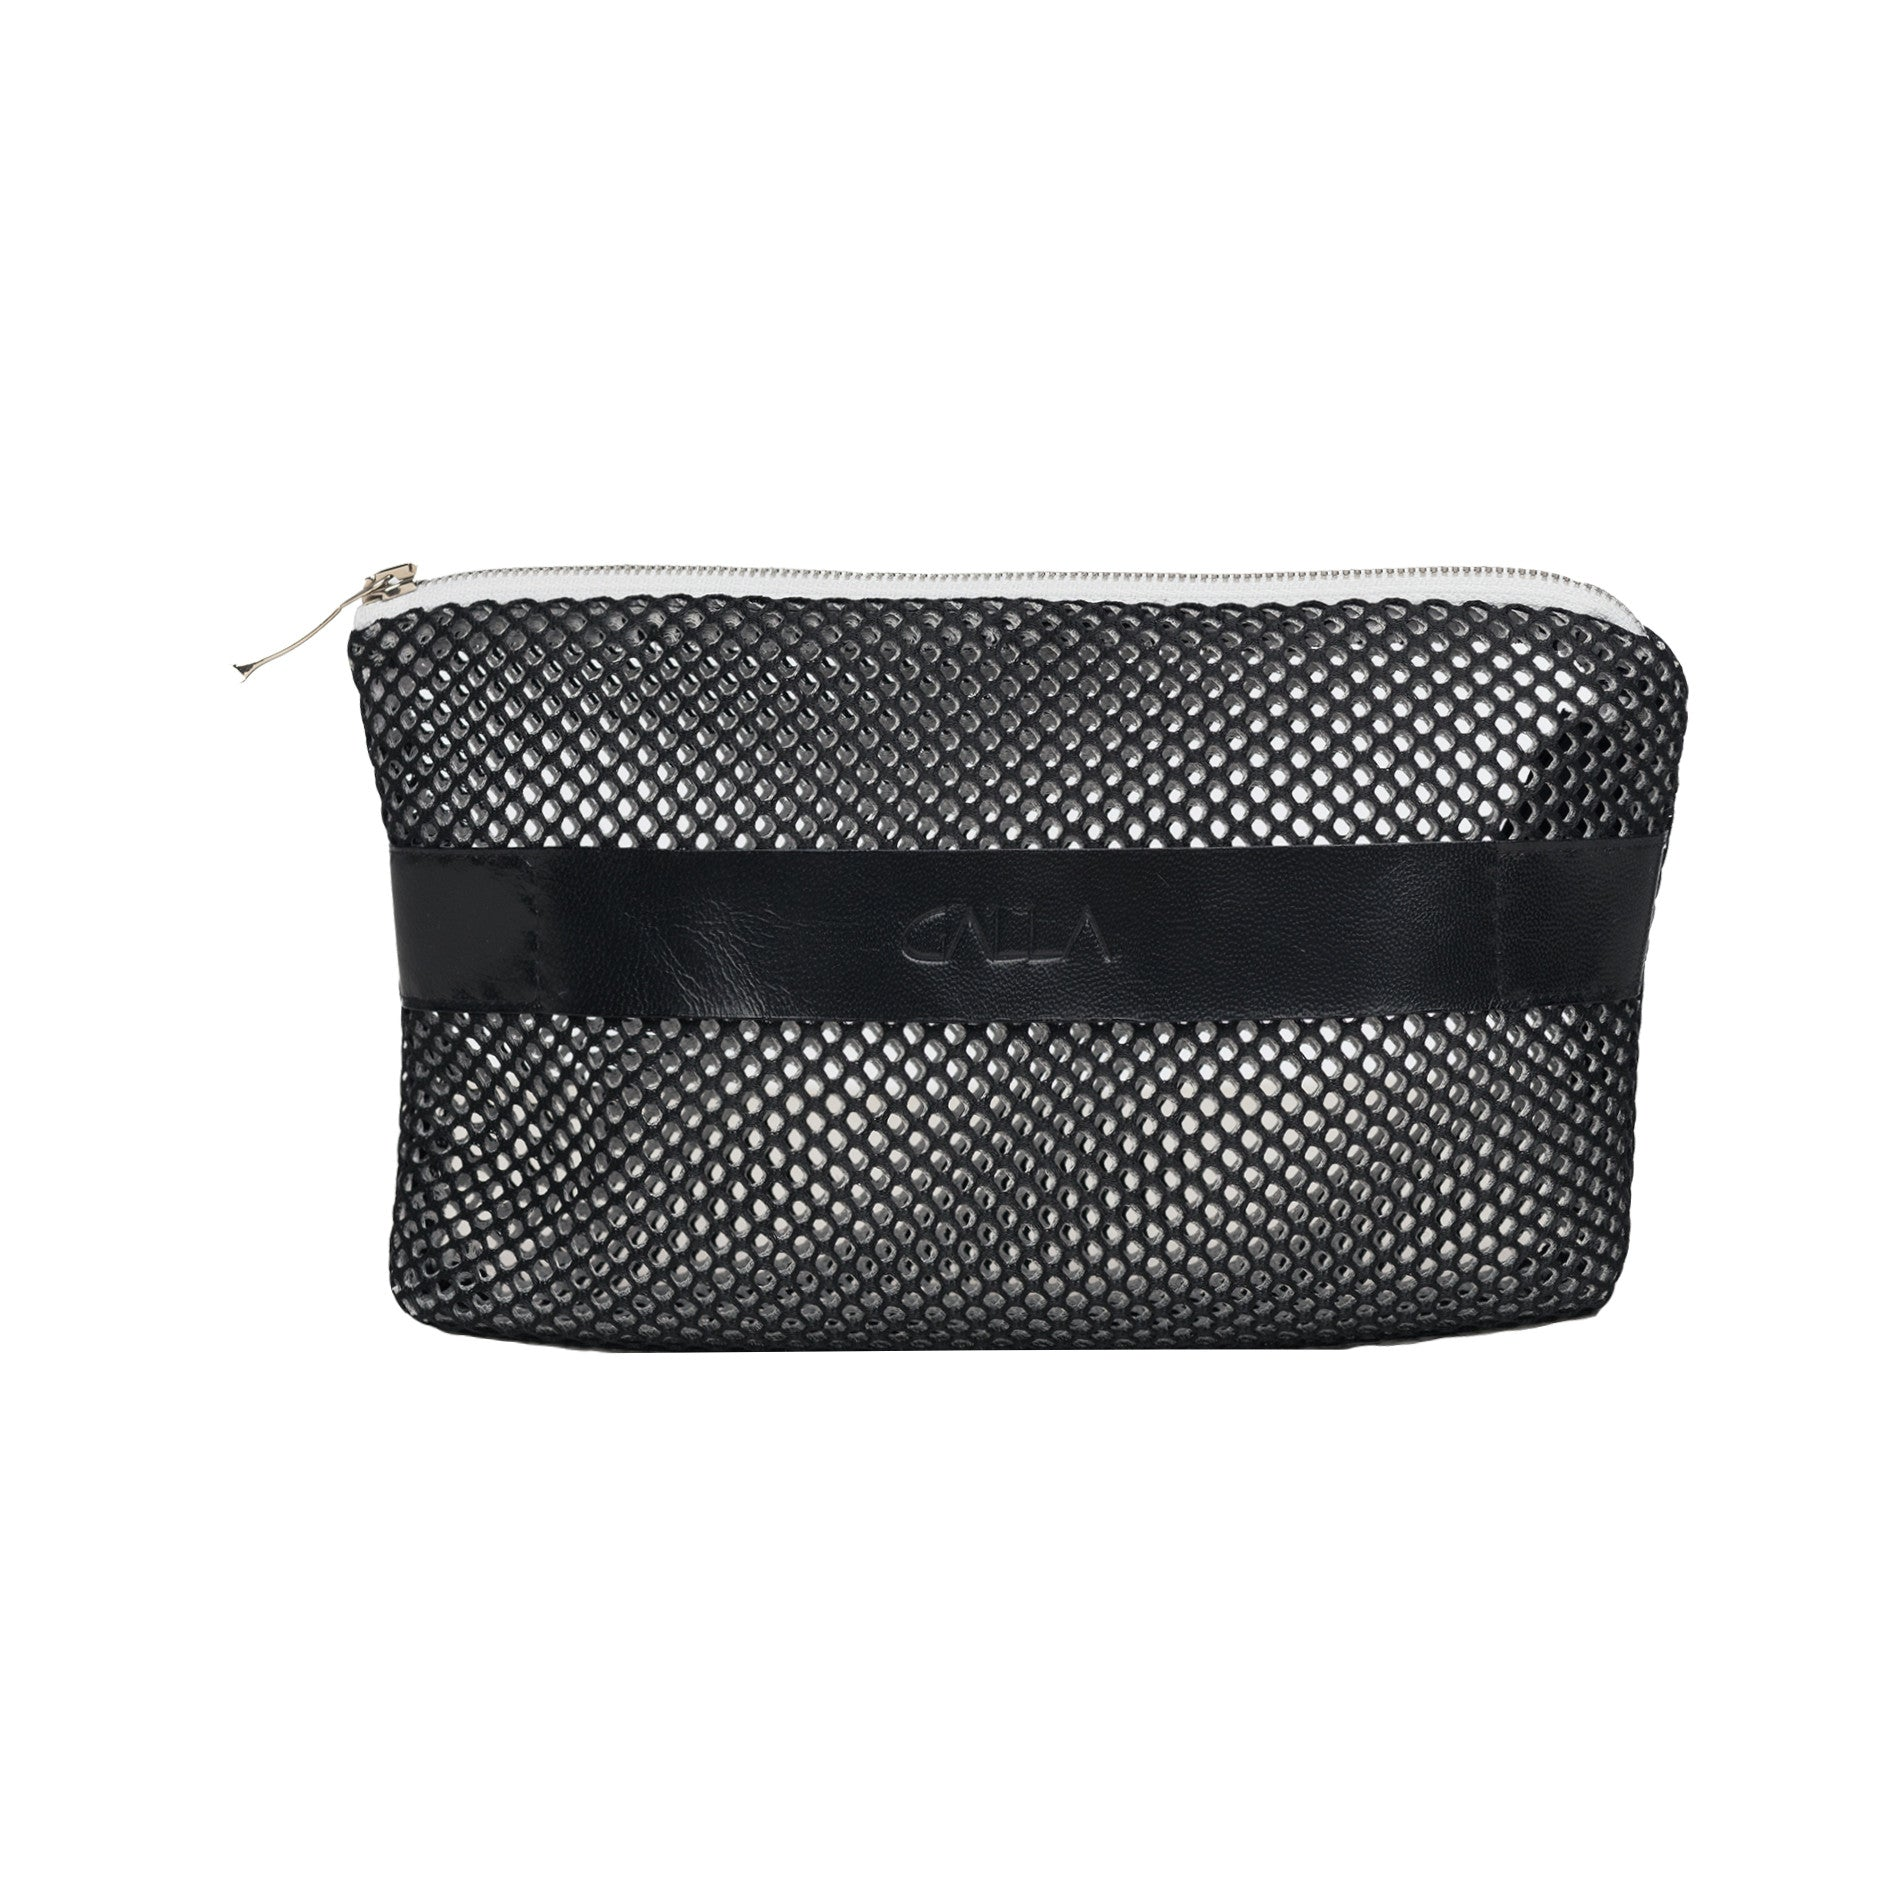 Black & White Reticulated Clutch